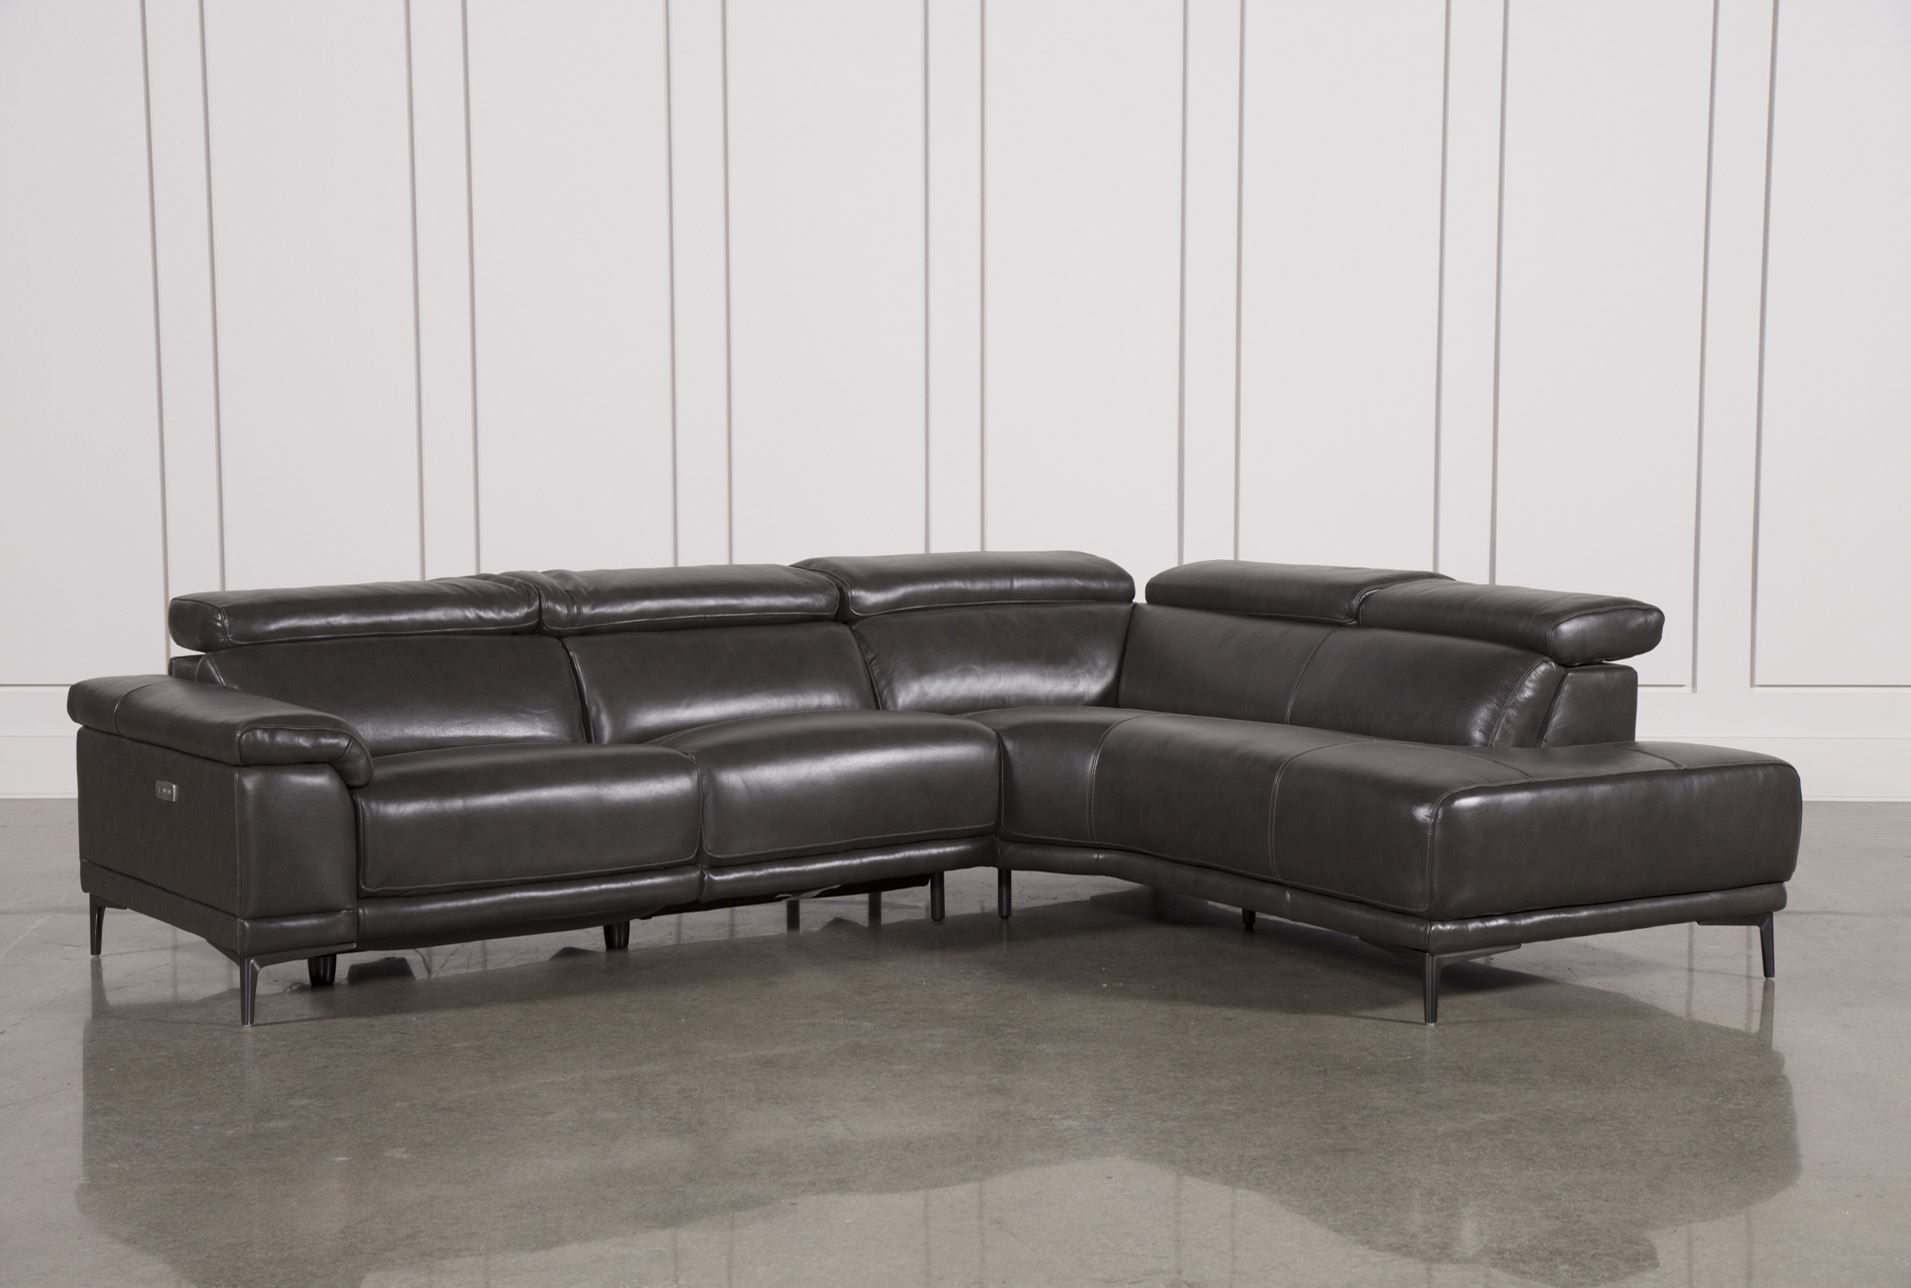 Tatum Dark Grey 2 Piece Sectional W/raf Chaise | New Apt | Pinterest Pertaining To Calder Grey 6 Piece Manual Reclining Sectionals (View 5 of 25)